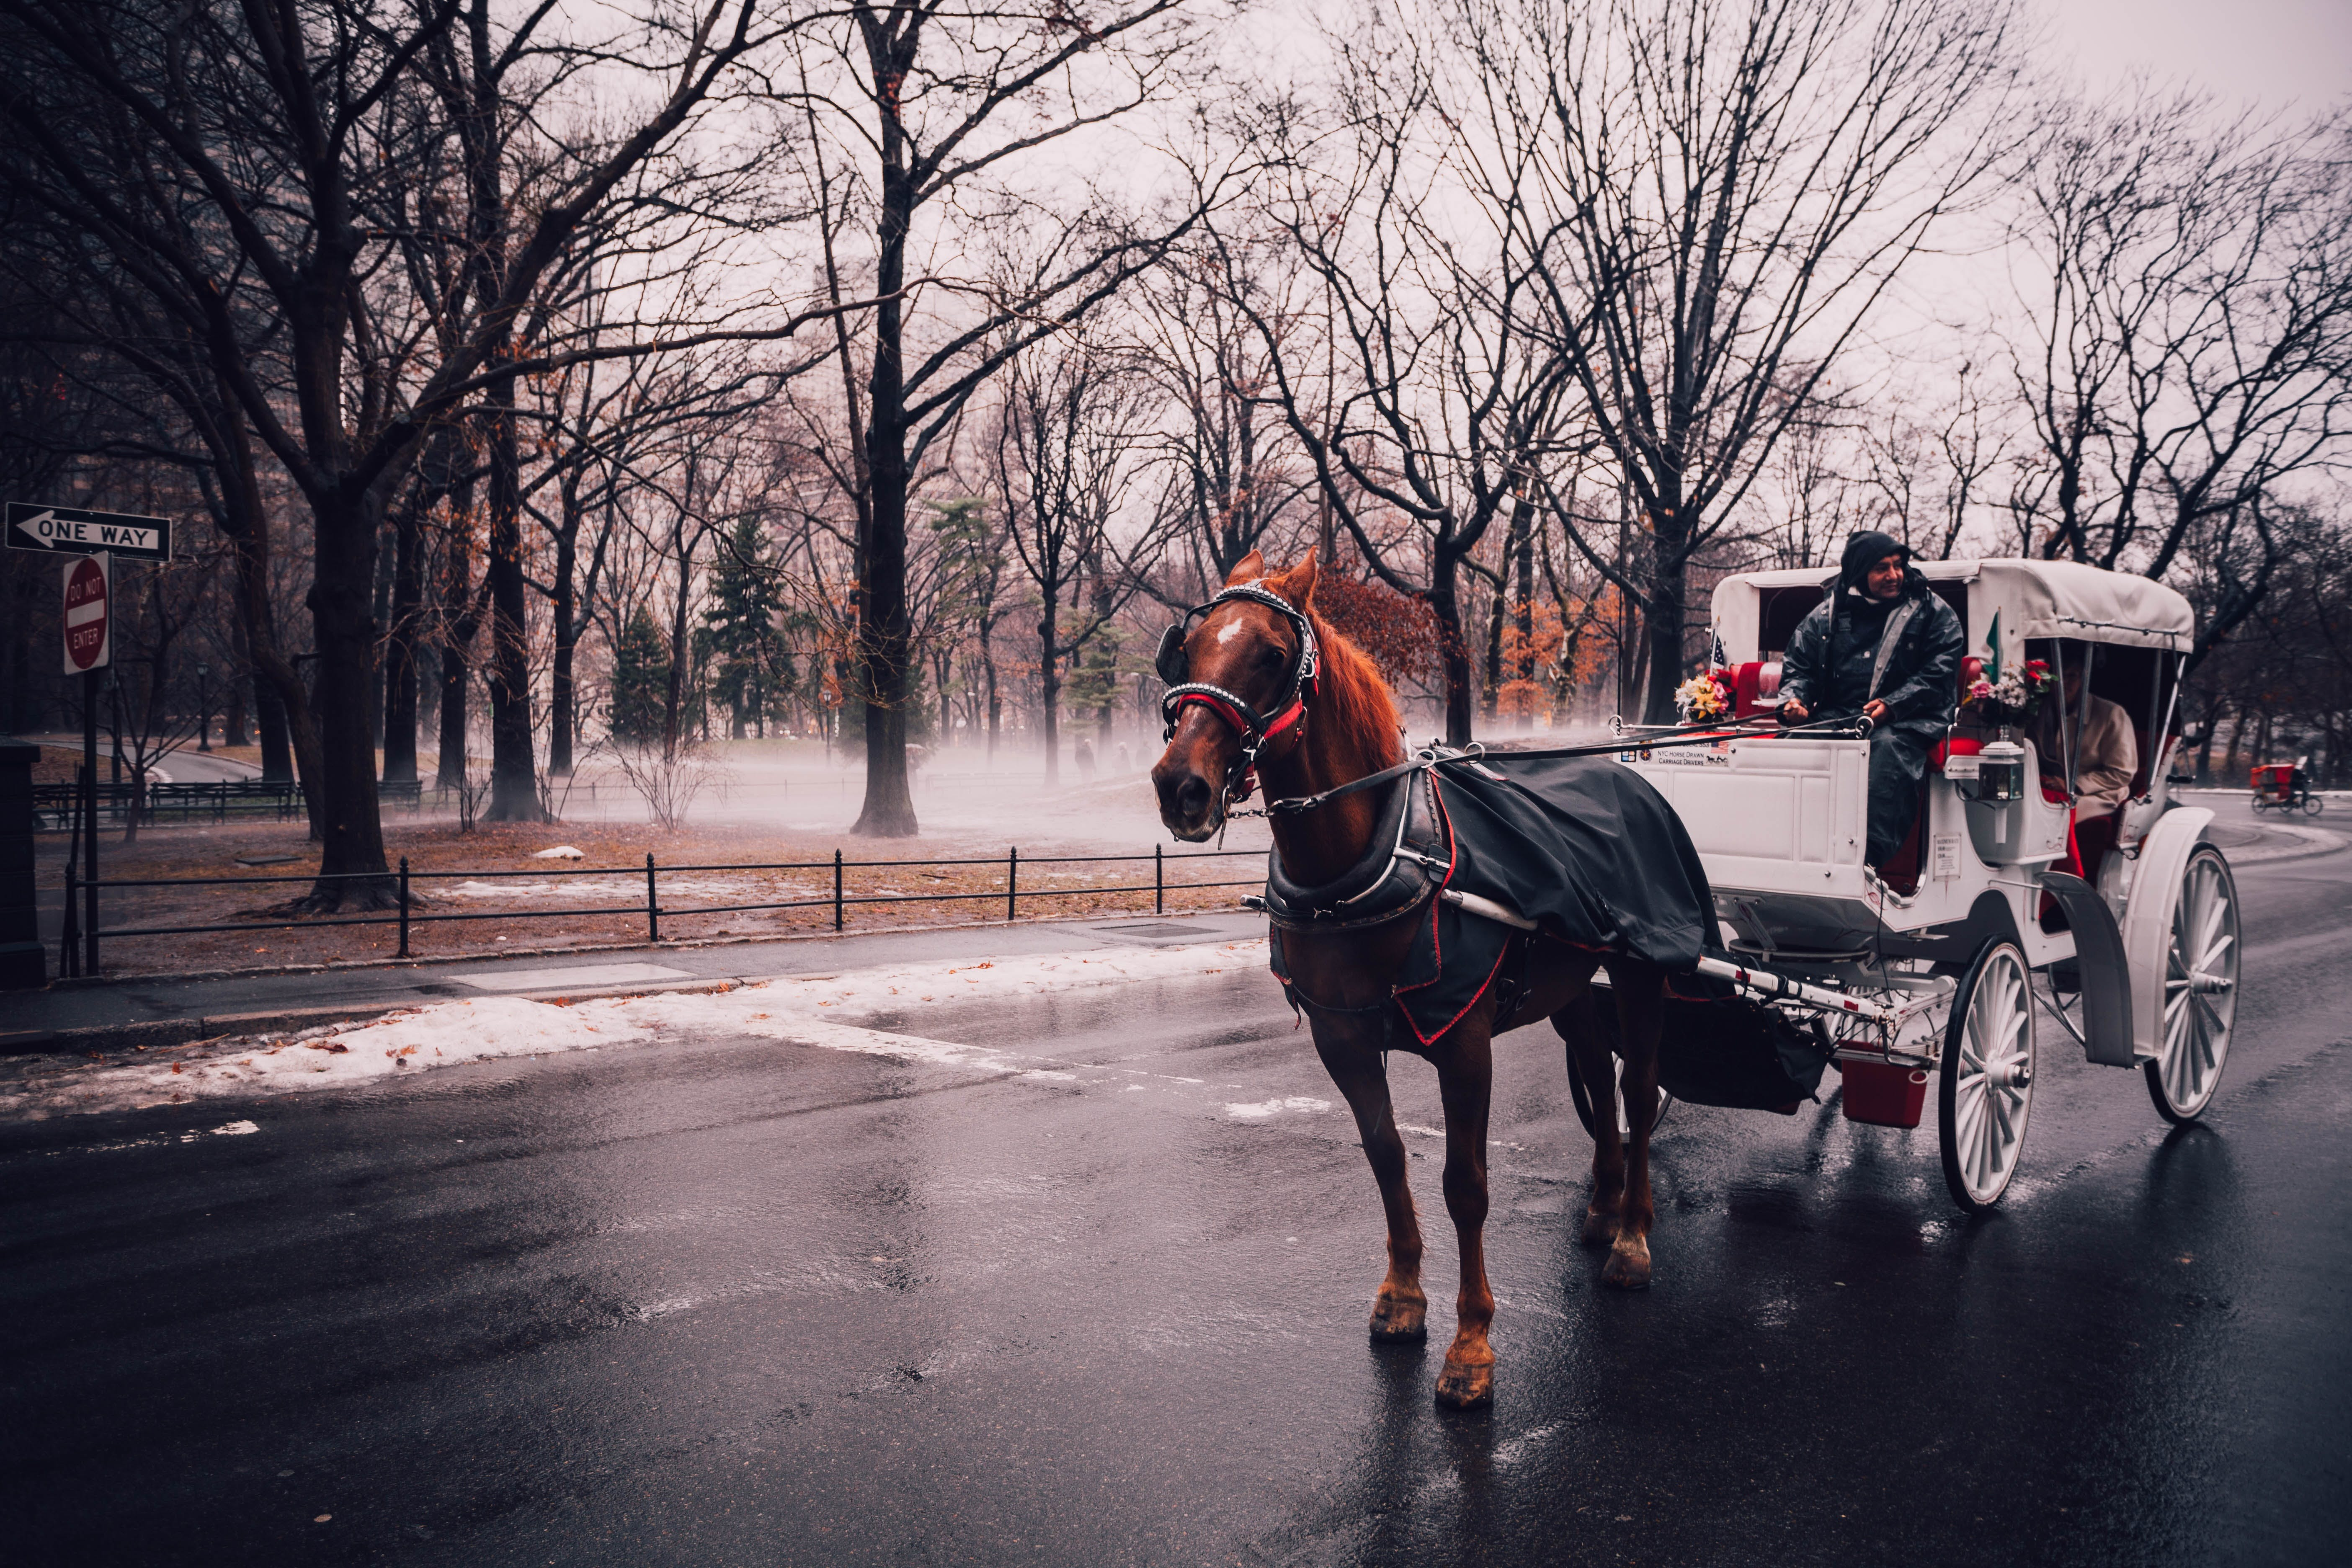 carriage, central park, city